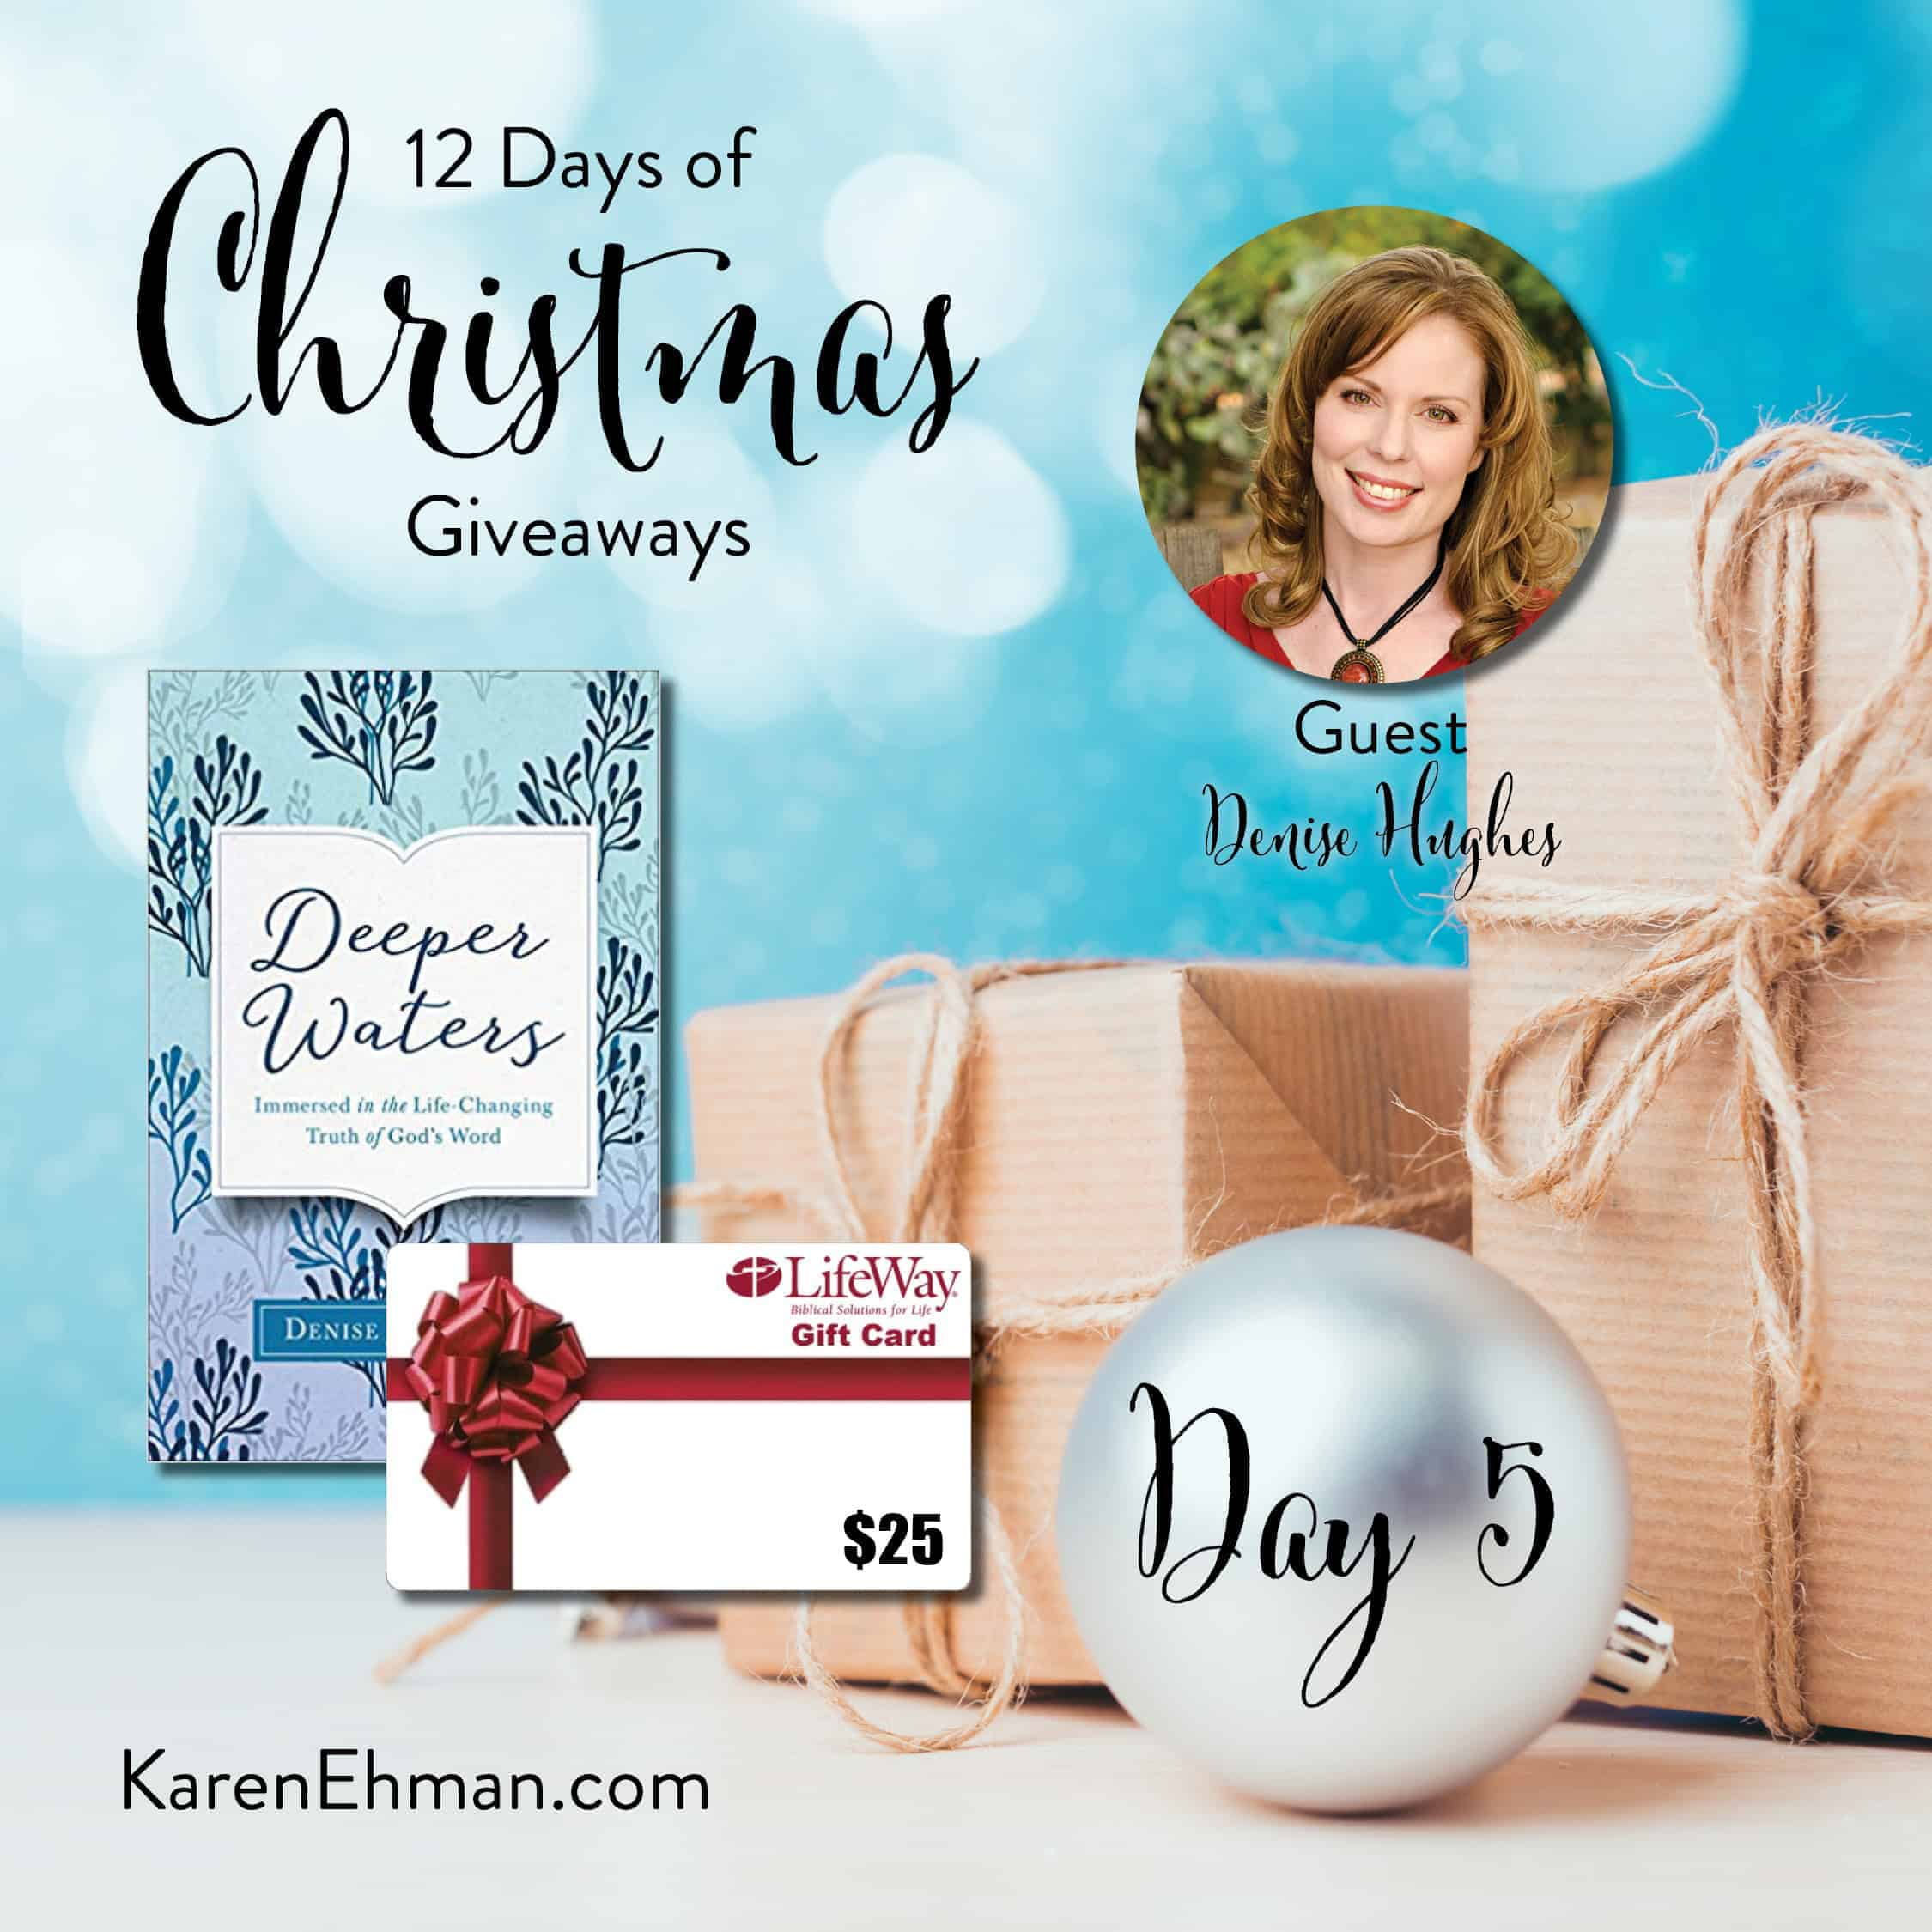 Day 5 of 12 Days of Christmas Giveaways (with Denise Hughes)